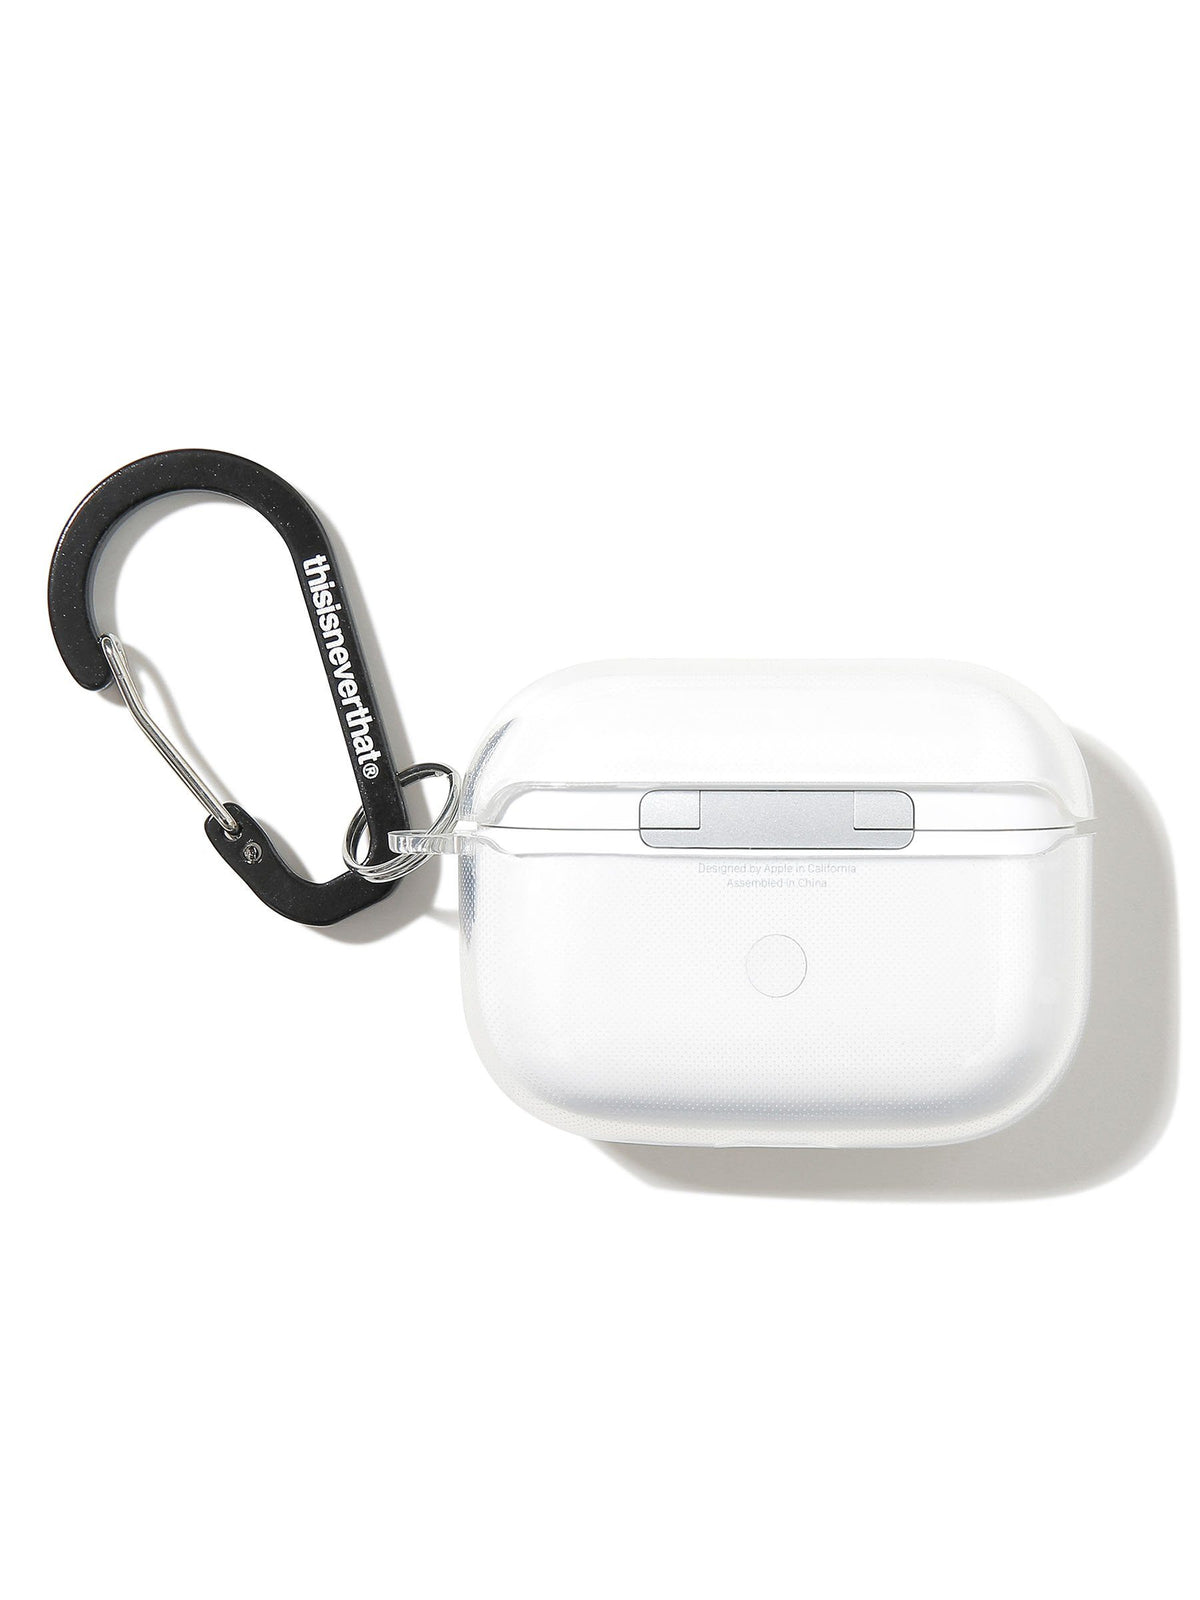 T-Logo AirPods Pro Case Accessory